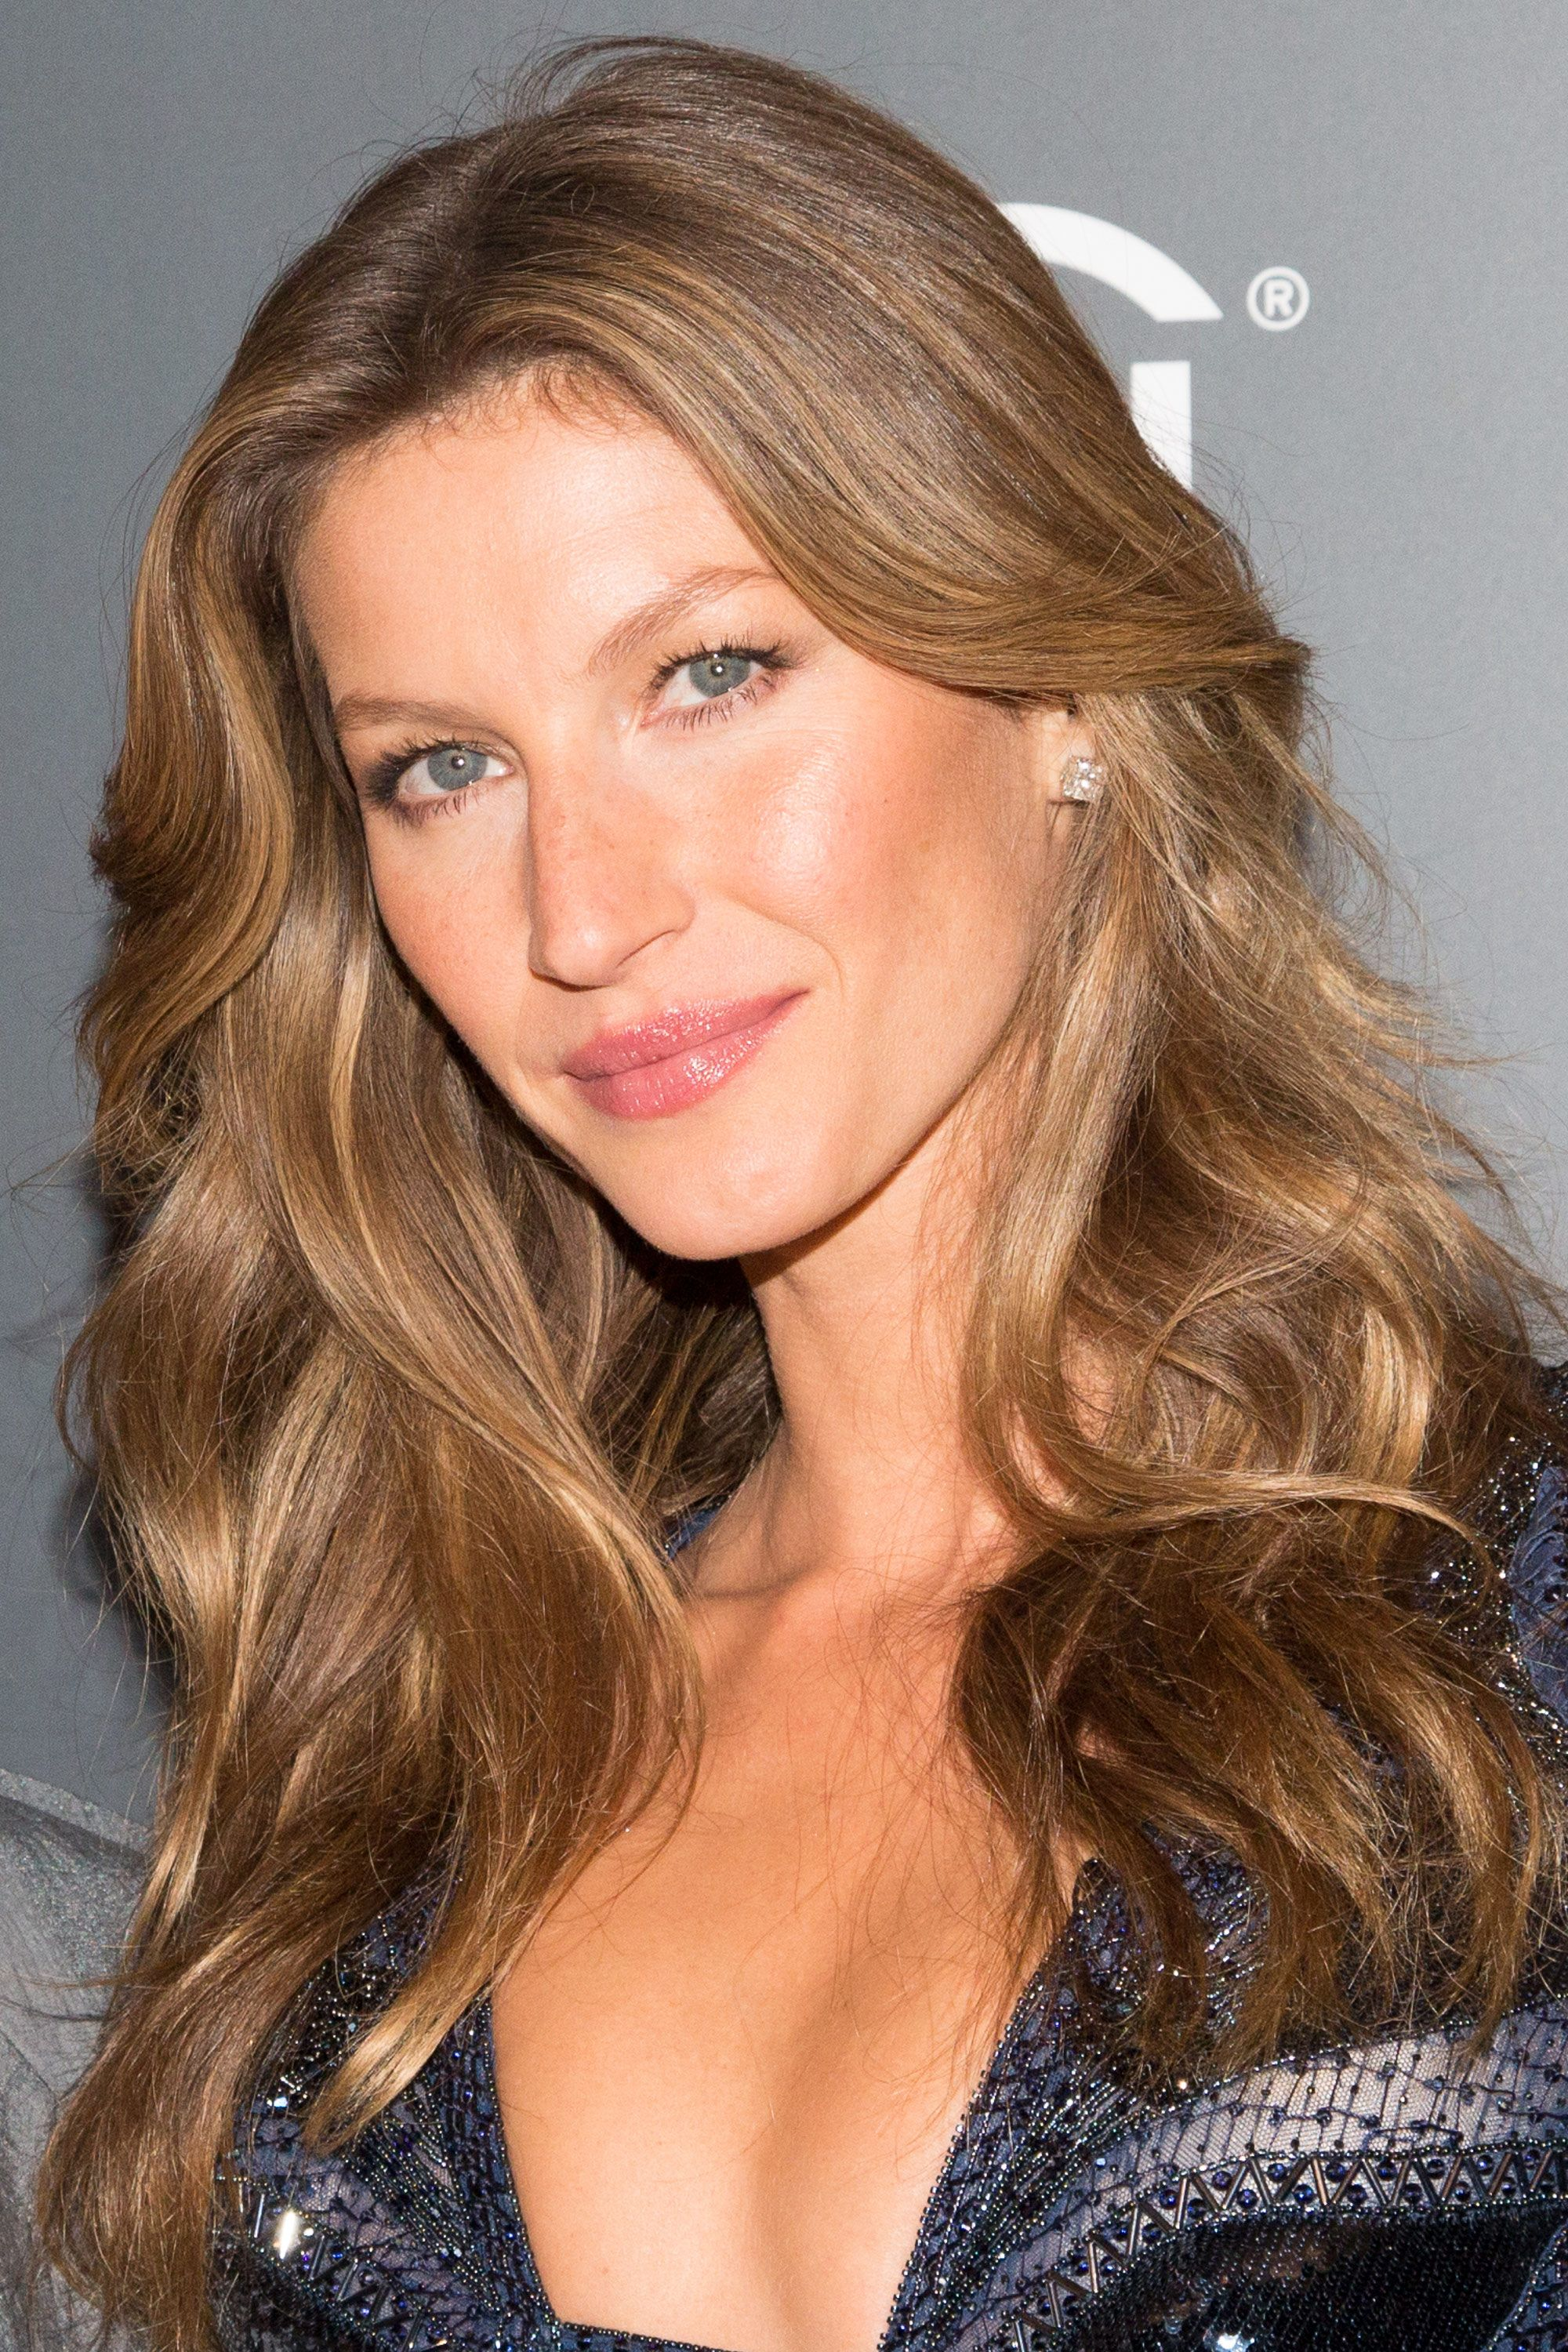 Gisele S Curls Now Have A Parody Twitter Account The Cut